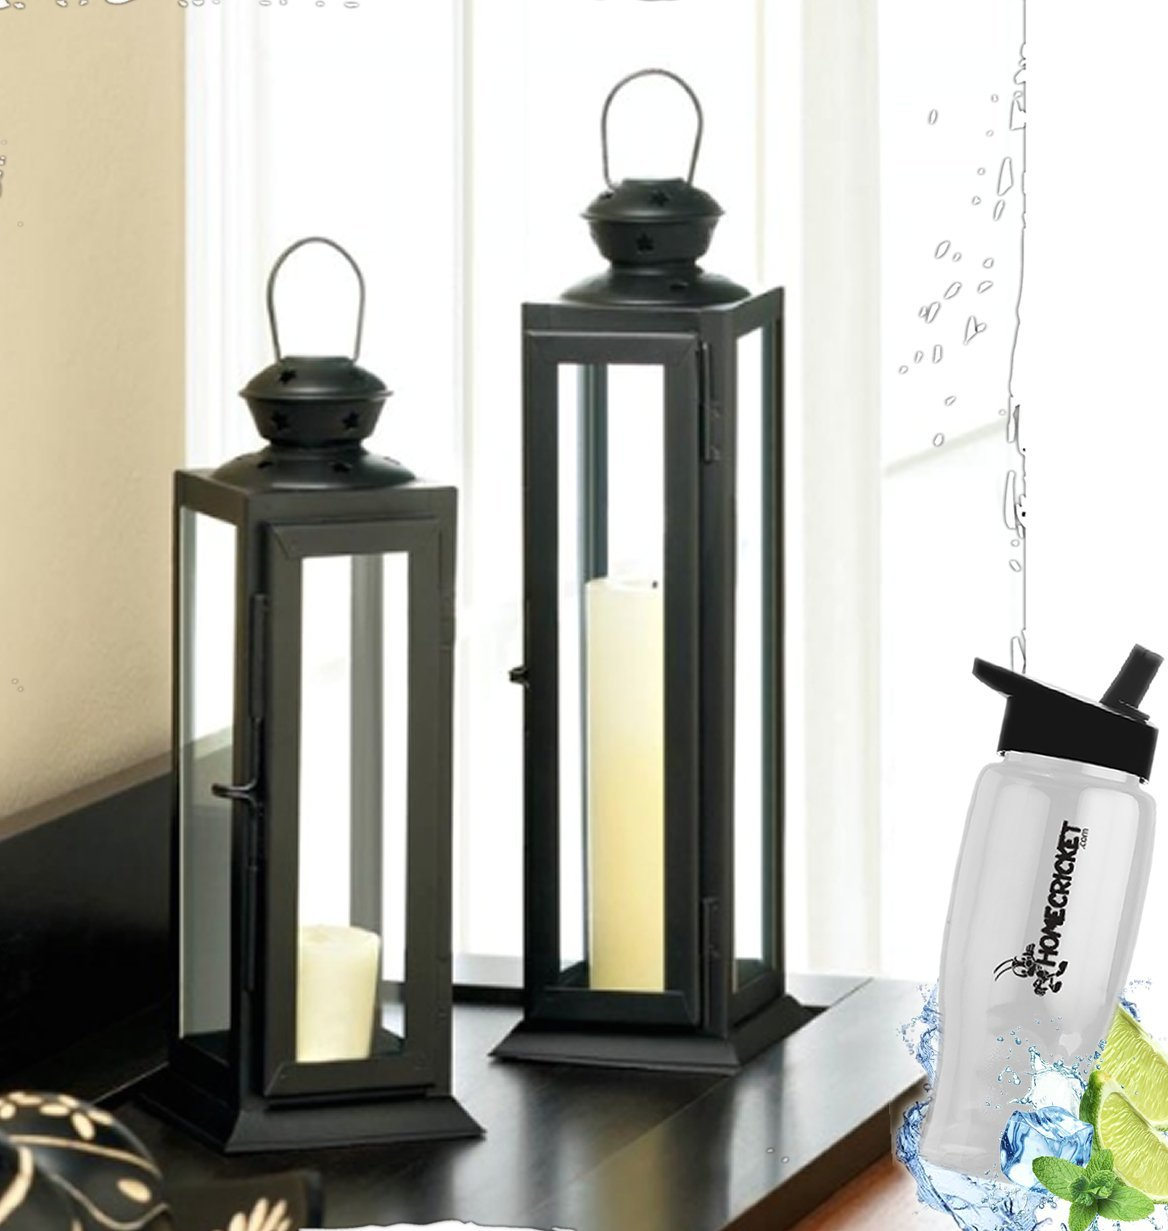 HomeCricket Gift Included- Set of 2 Tall And Short Sleek Lean Star Cutout Decorative Lanterns + FREE Bonus Water Bottle by Home Cricket